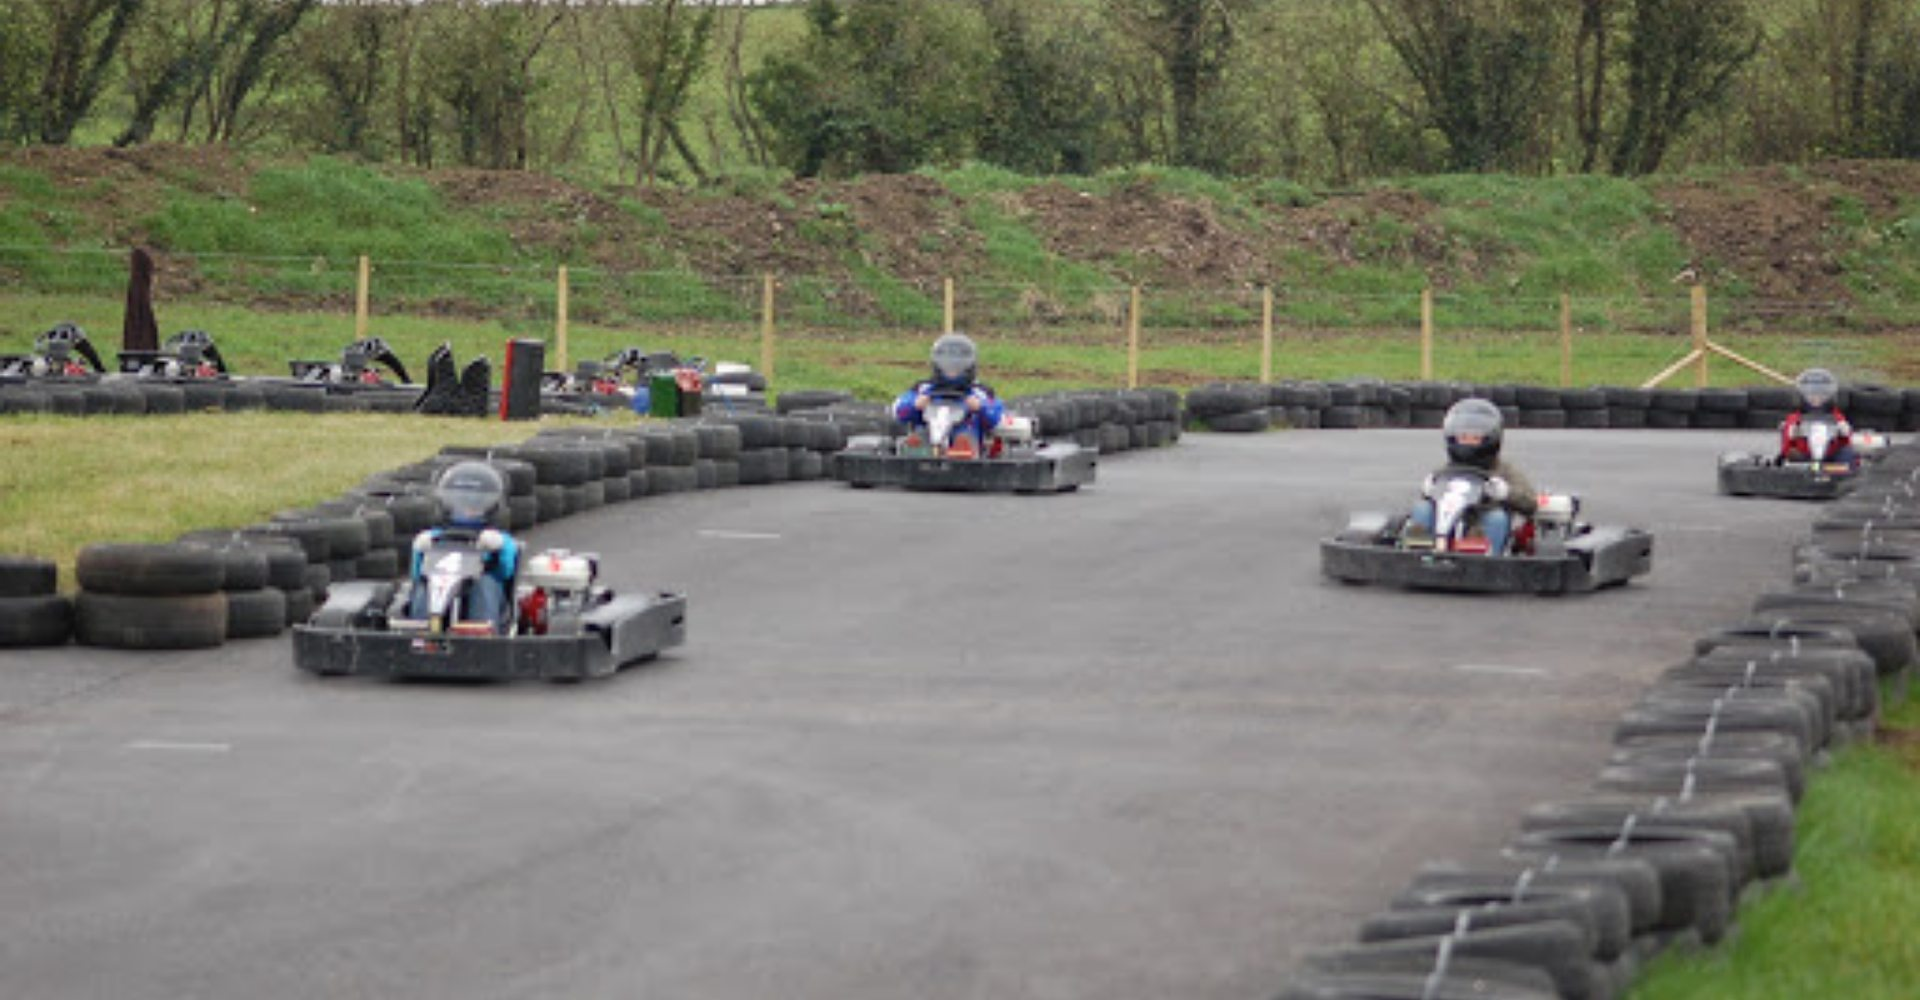 Go Karting - Staycation in Fermanagh